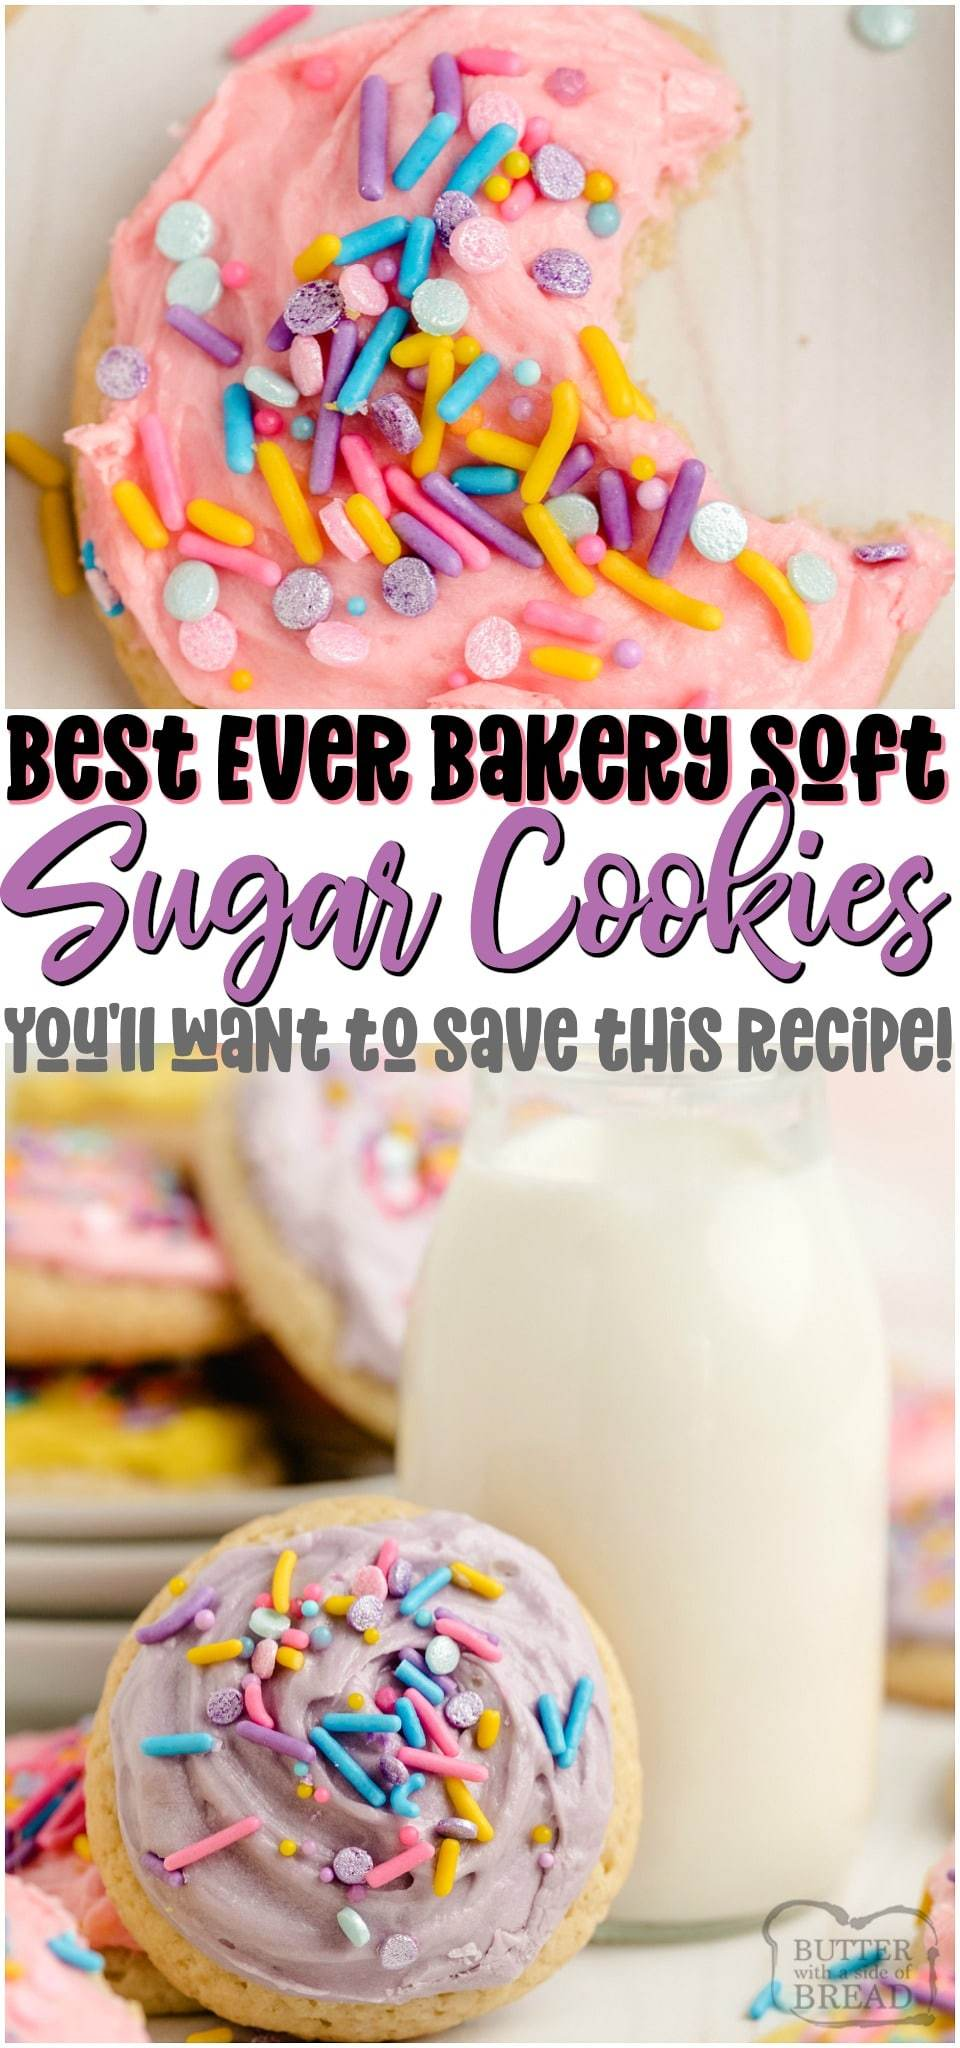 Super Soft Sugar Cookies made with butter, sugar, flour & sour cream for great flavor and bakery soft texture! Softest sugar cookies you've ever had- & they decorate beautifully! Save this recipe! #sugarcookies #cookies #softcookies #holidaybaking #cutoutcookies #baking #dessert #recipe from BUTTER WITH A SIDE OF BREAD